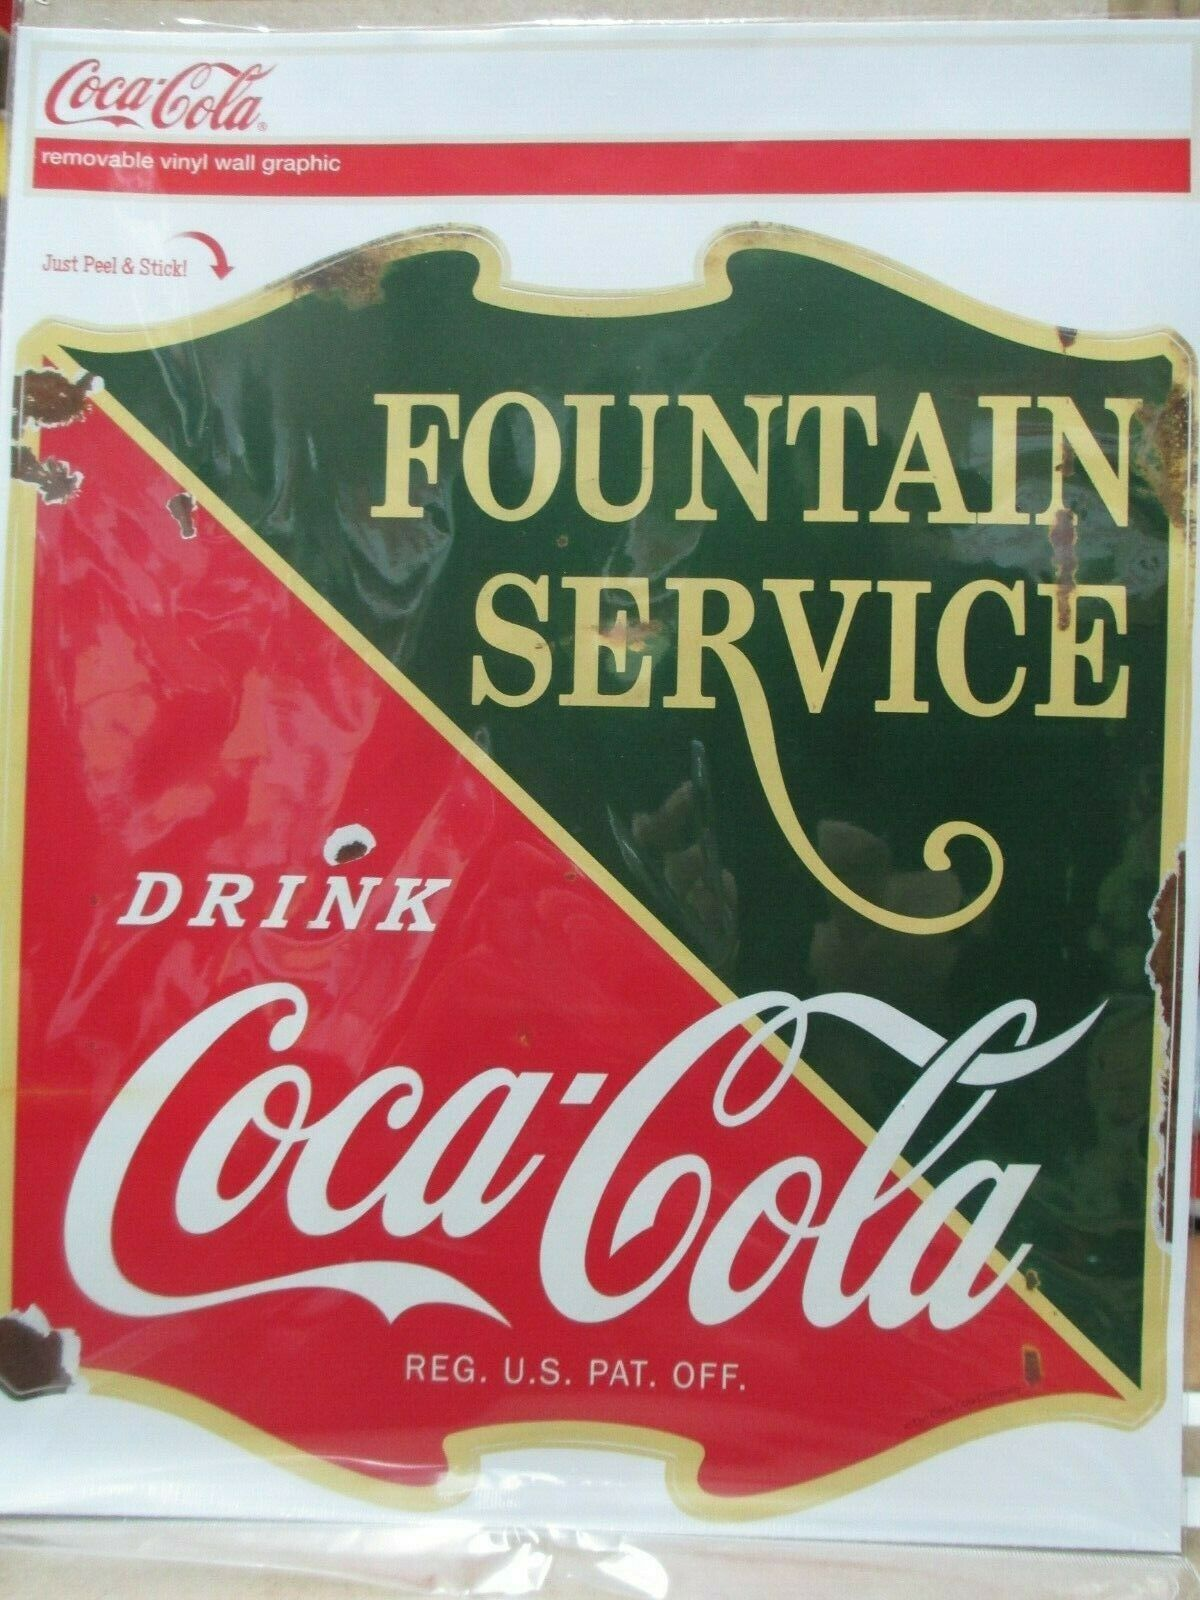 Primary image for Coca-Cola Removable Vinyl Decal 1930s Fountain Service Drugstore Distressed